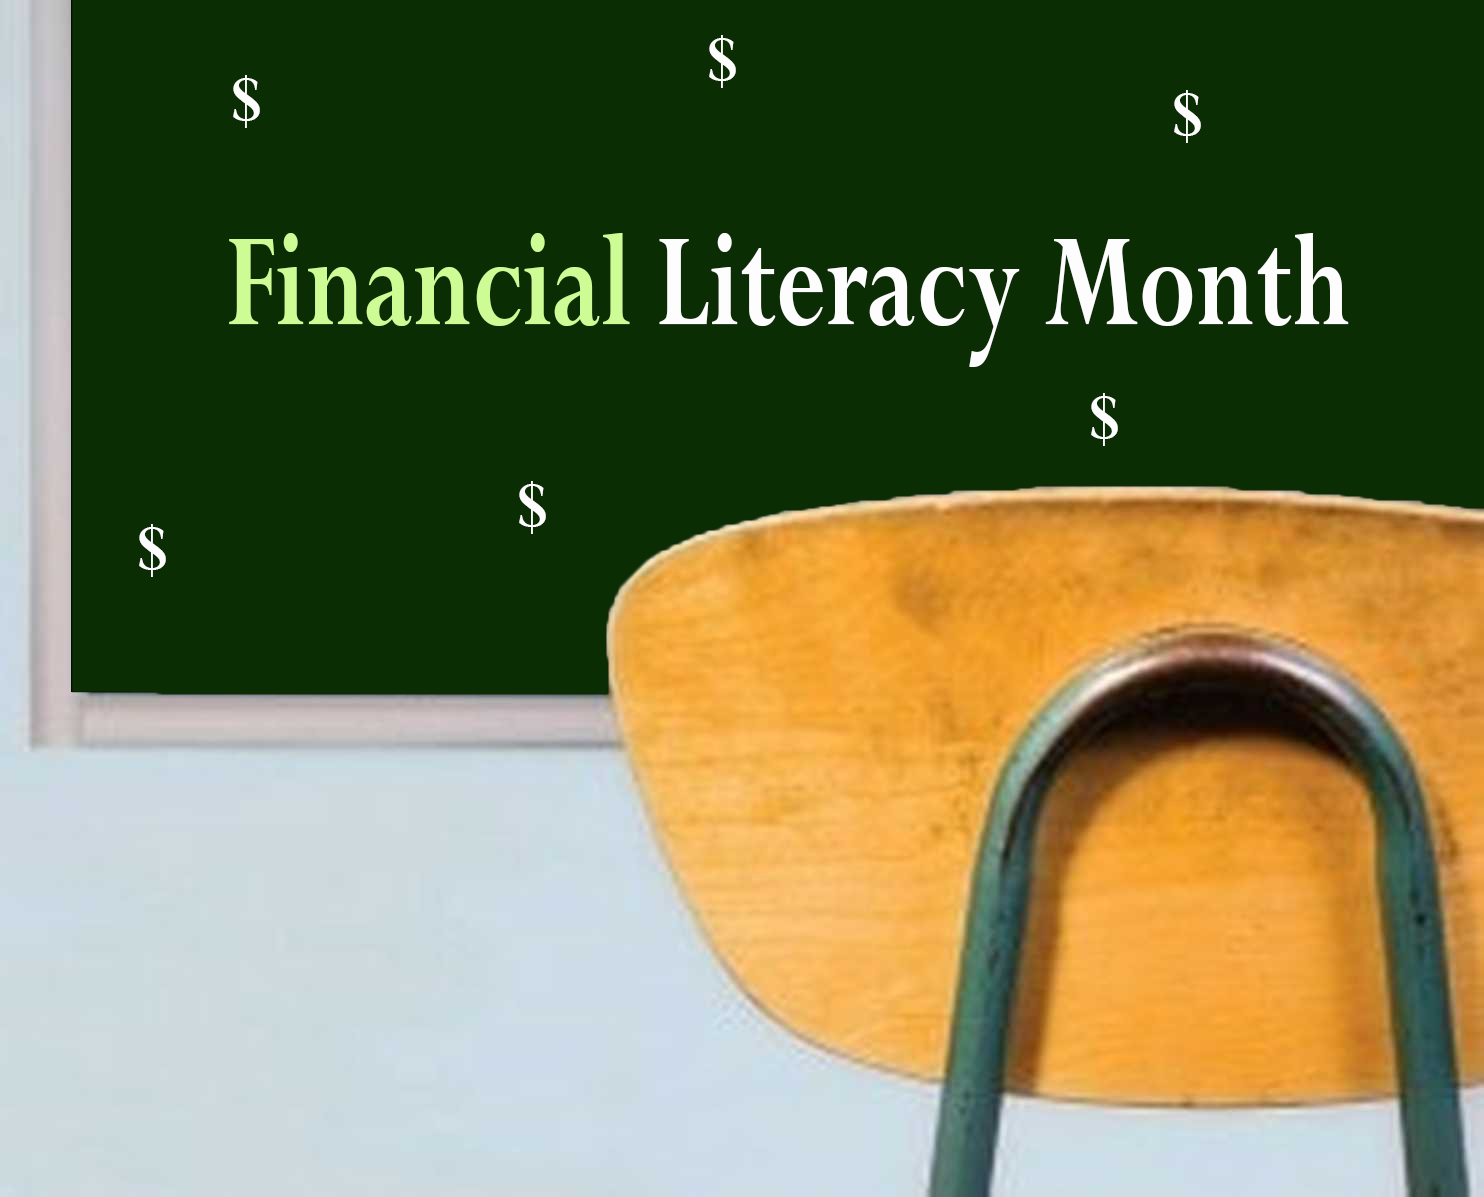 A student desk chair faces a chaulkboard with dollar signs and Financial Literacy written on it